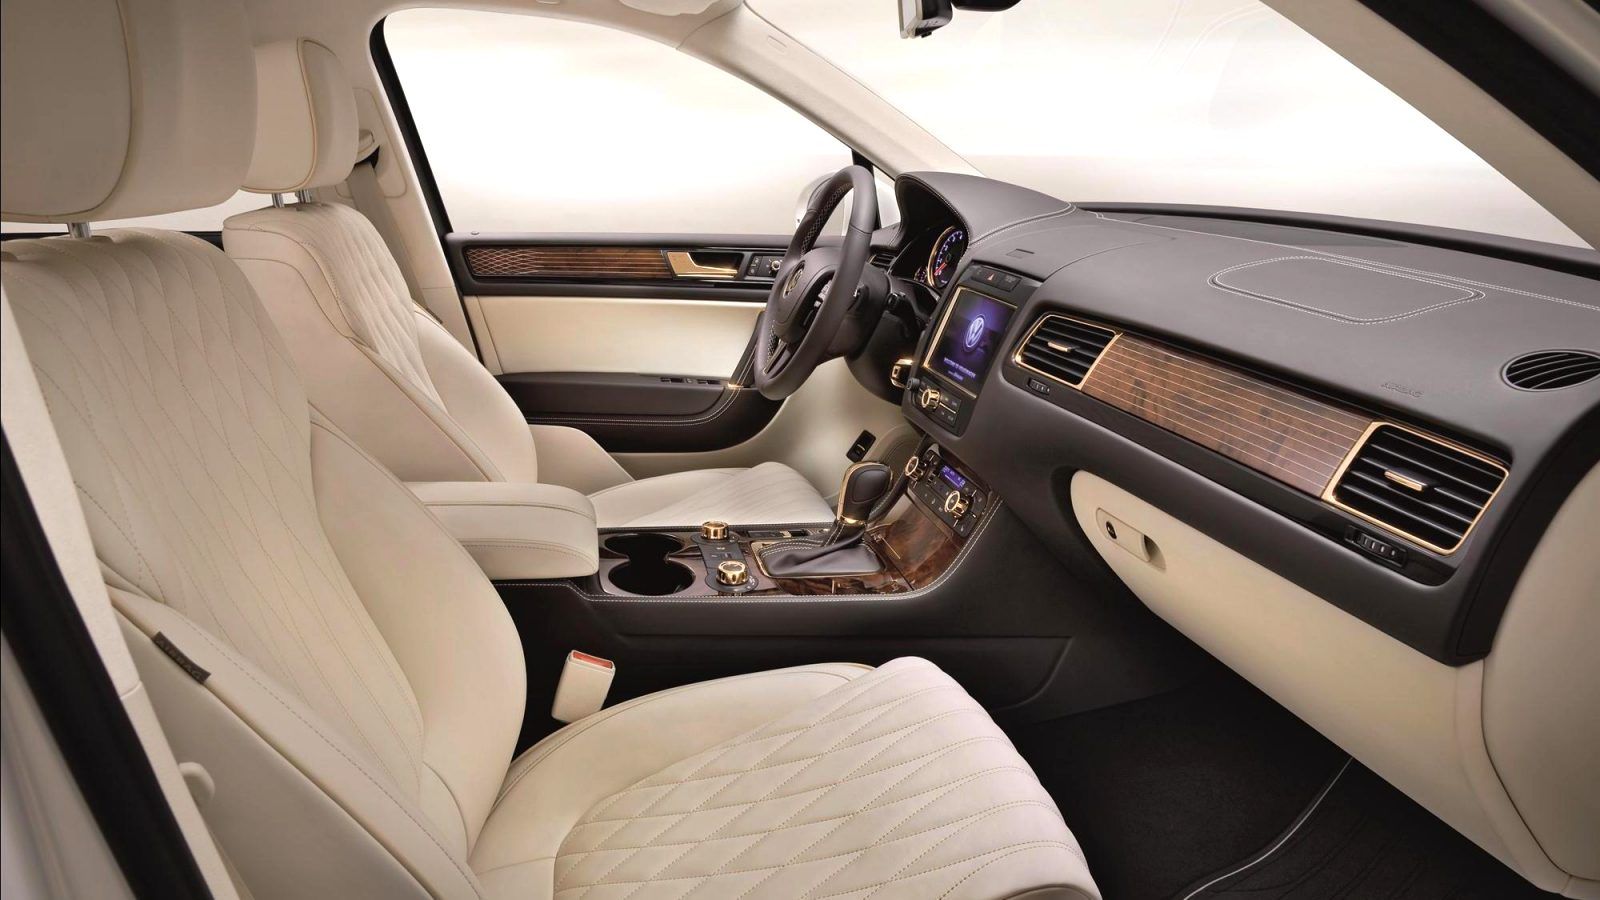 volkswagen touareg 2021 price in qatar Price and Review